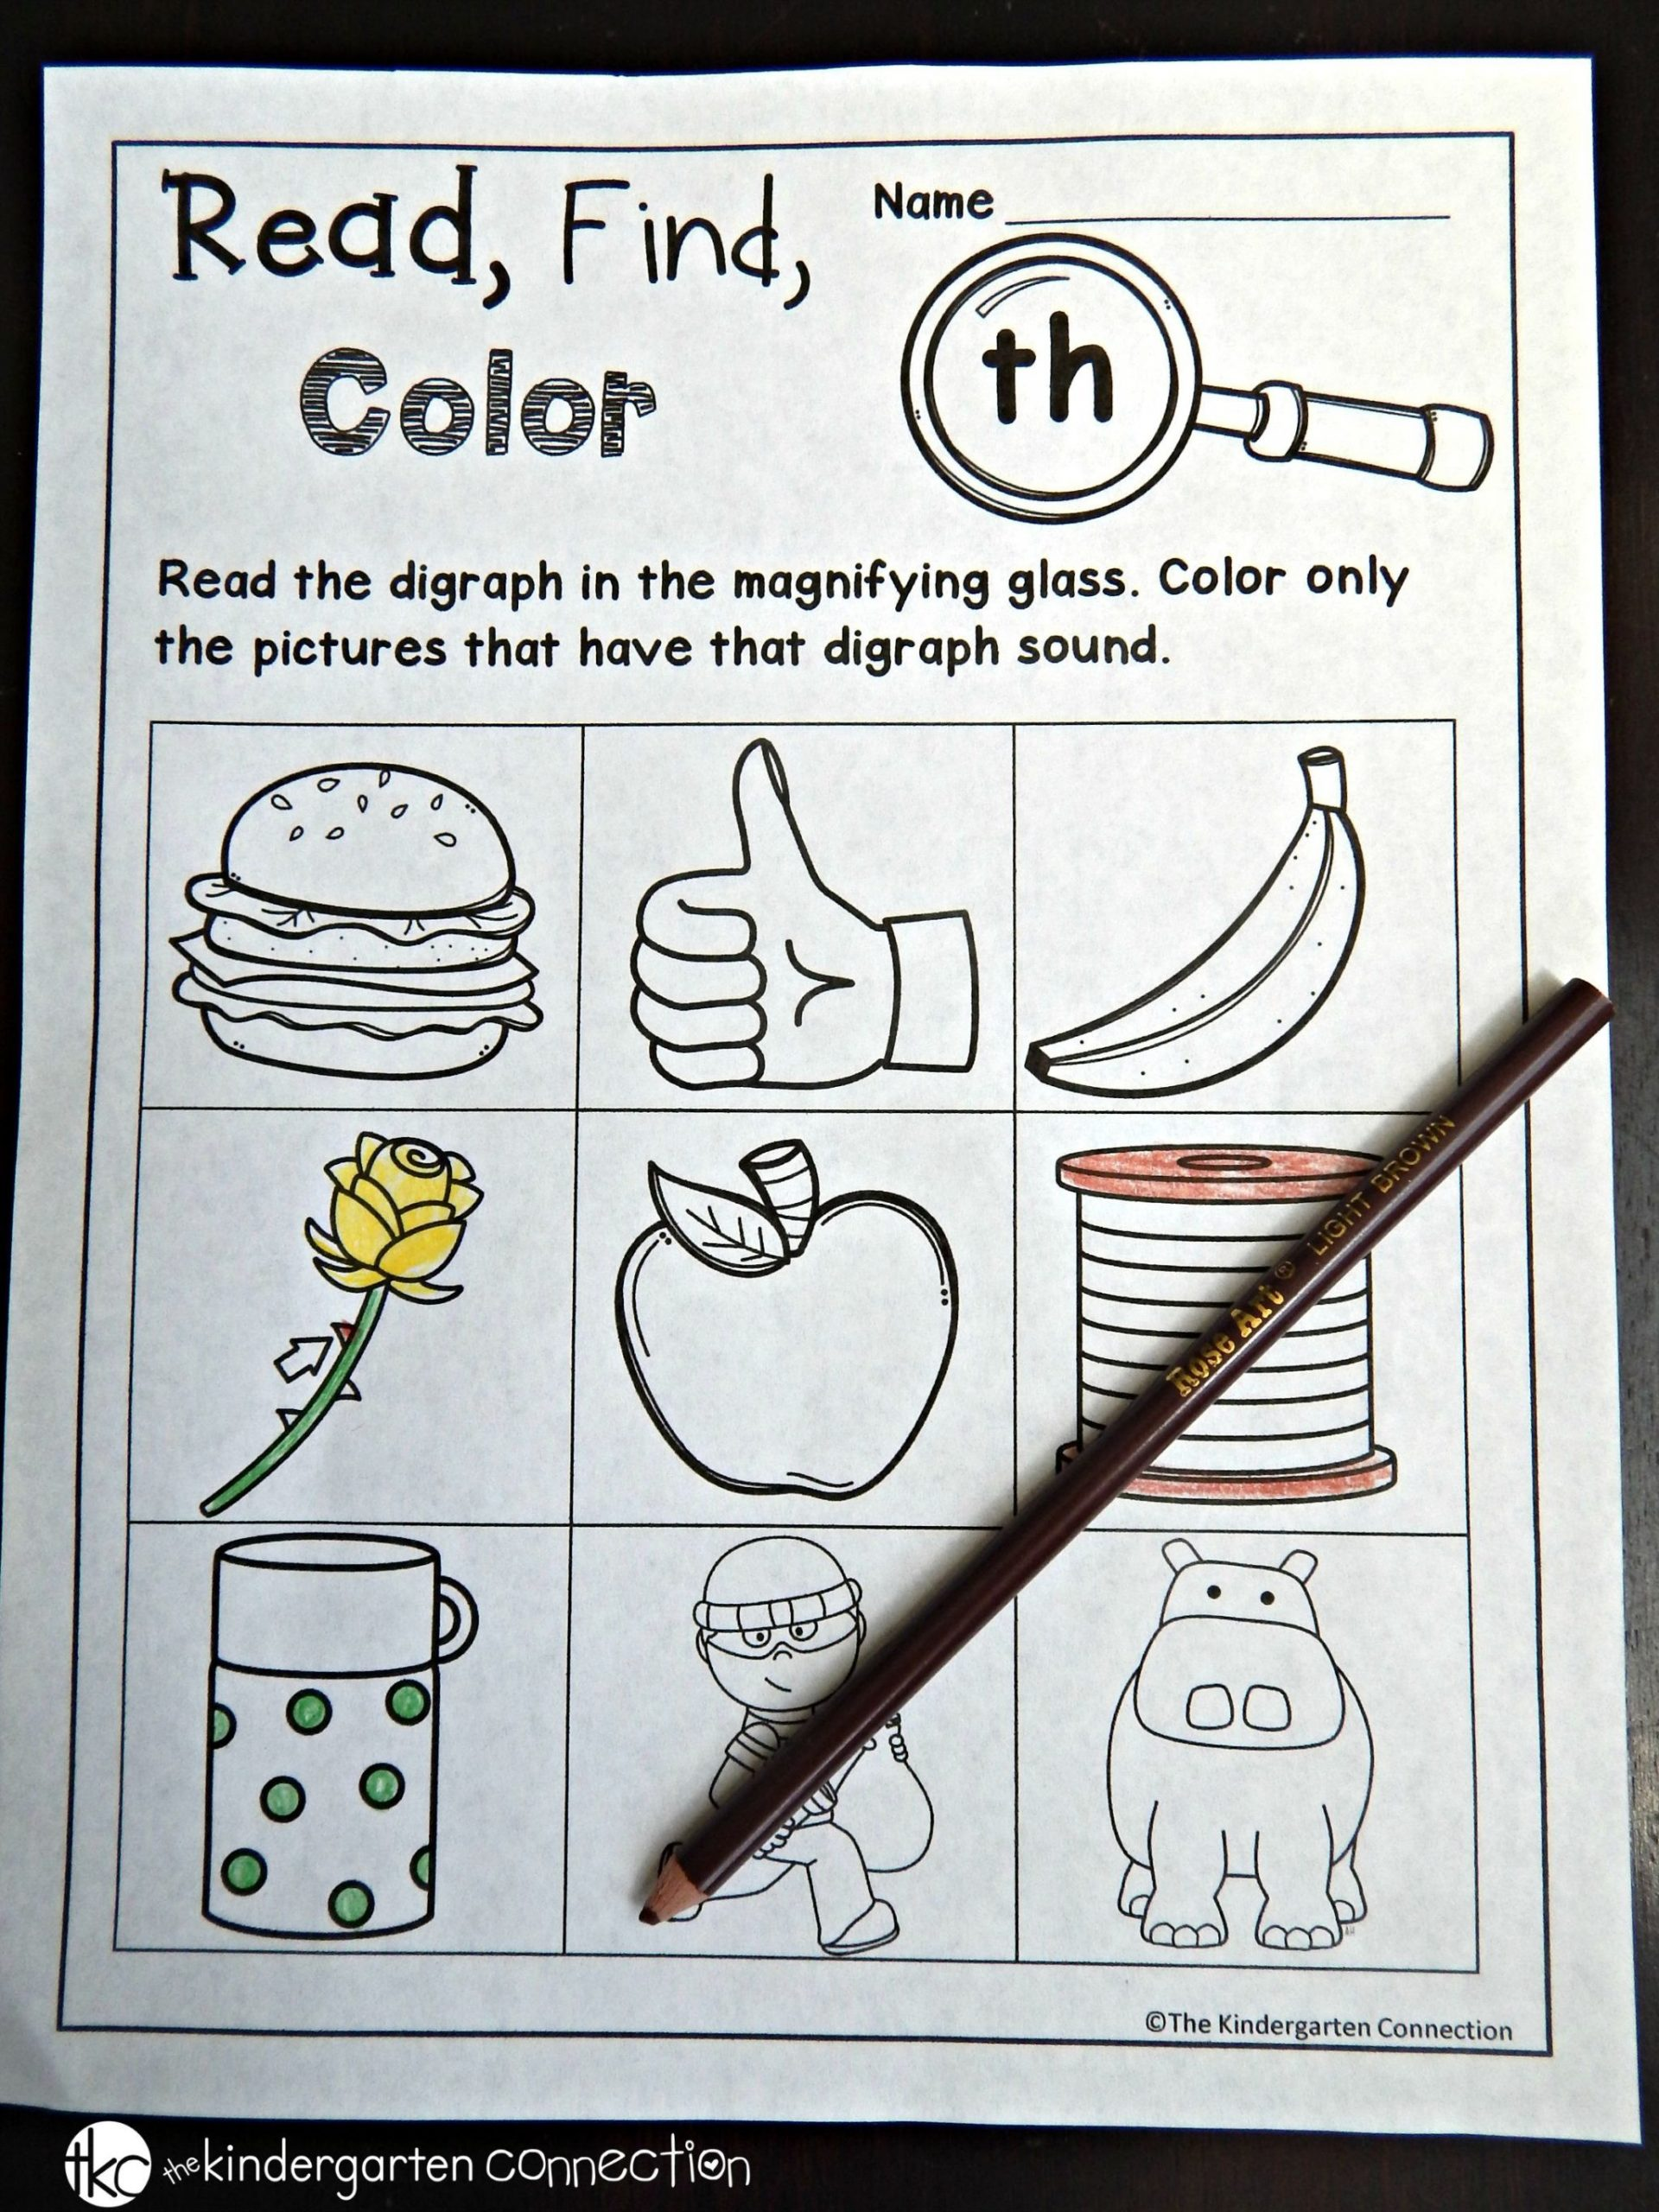 Ch Worksheets for Kindergarten Free Digraph and Cvce Printables the Kindergarten Connection